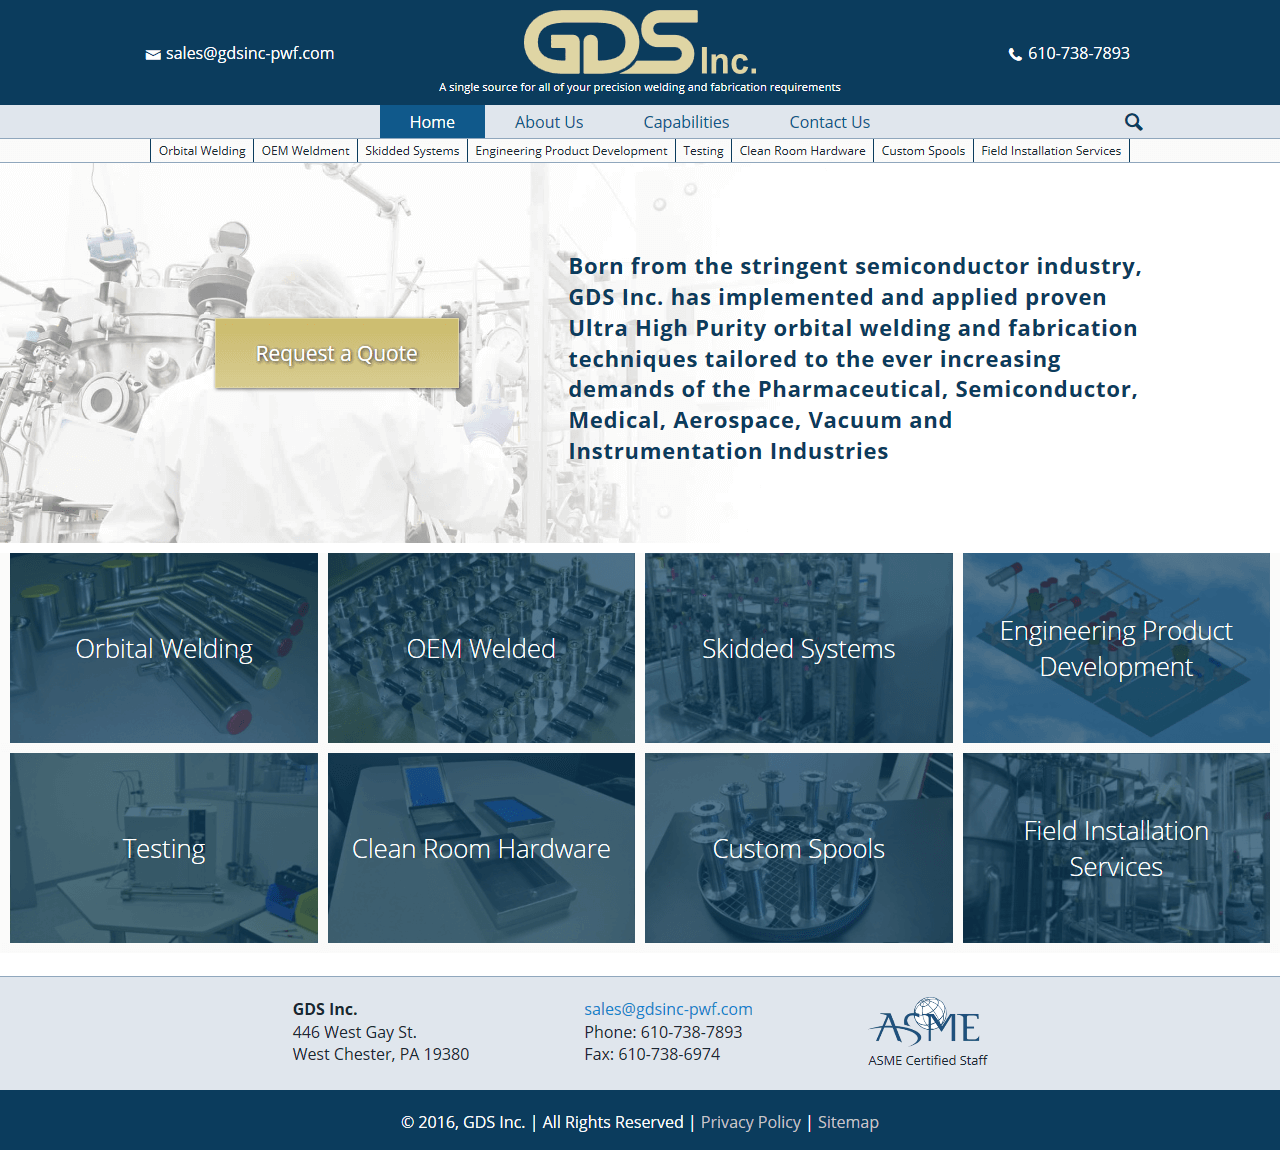 GDS Inc. Website